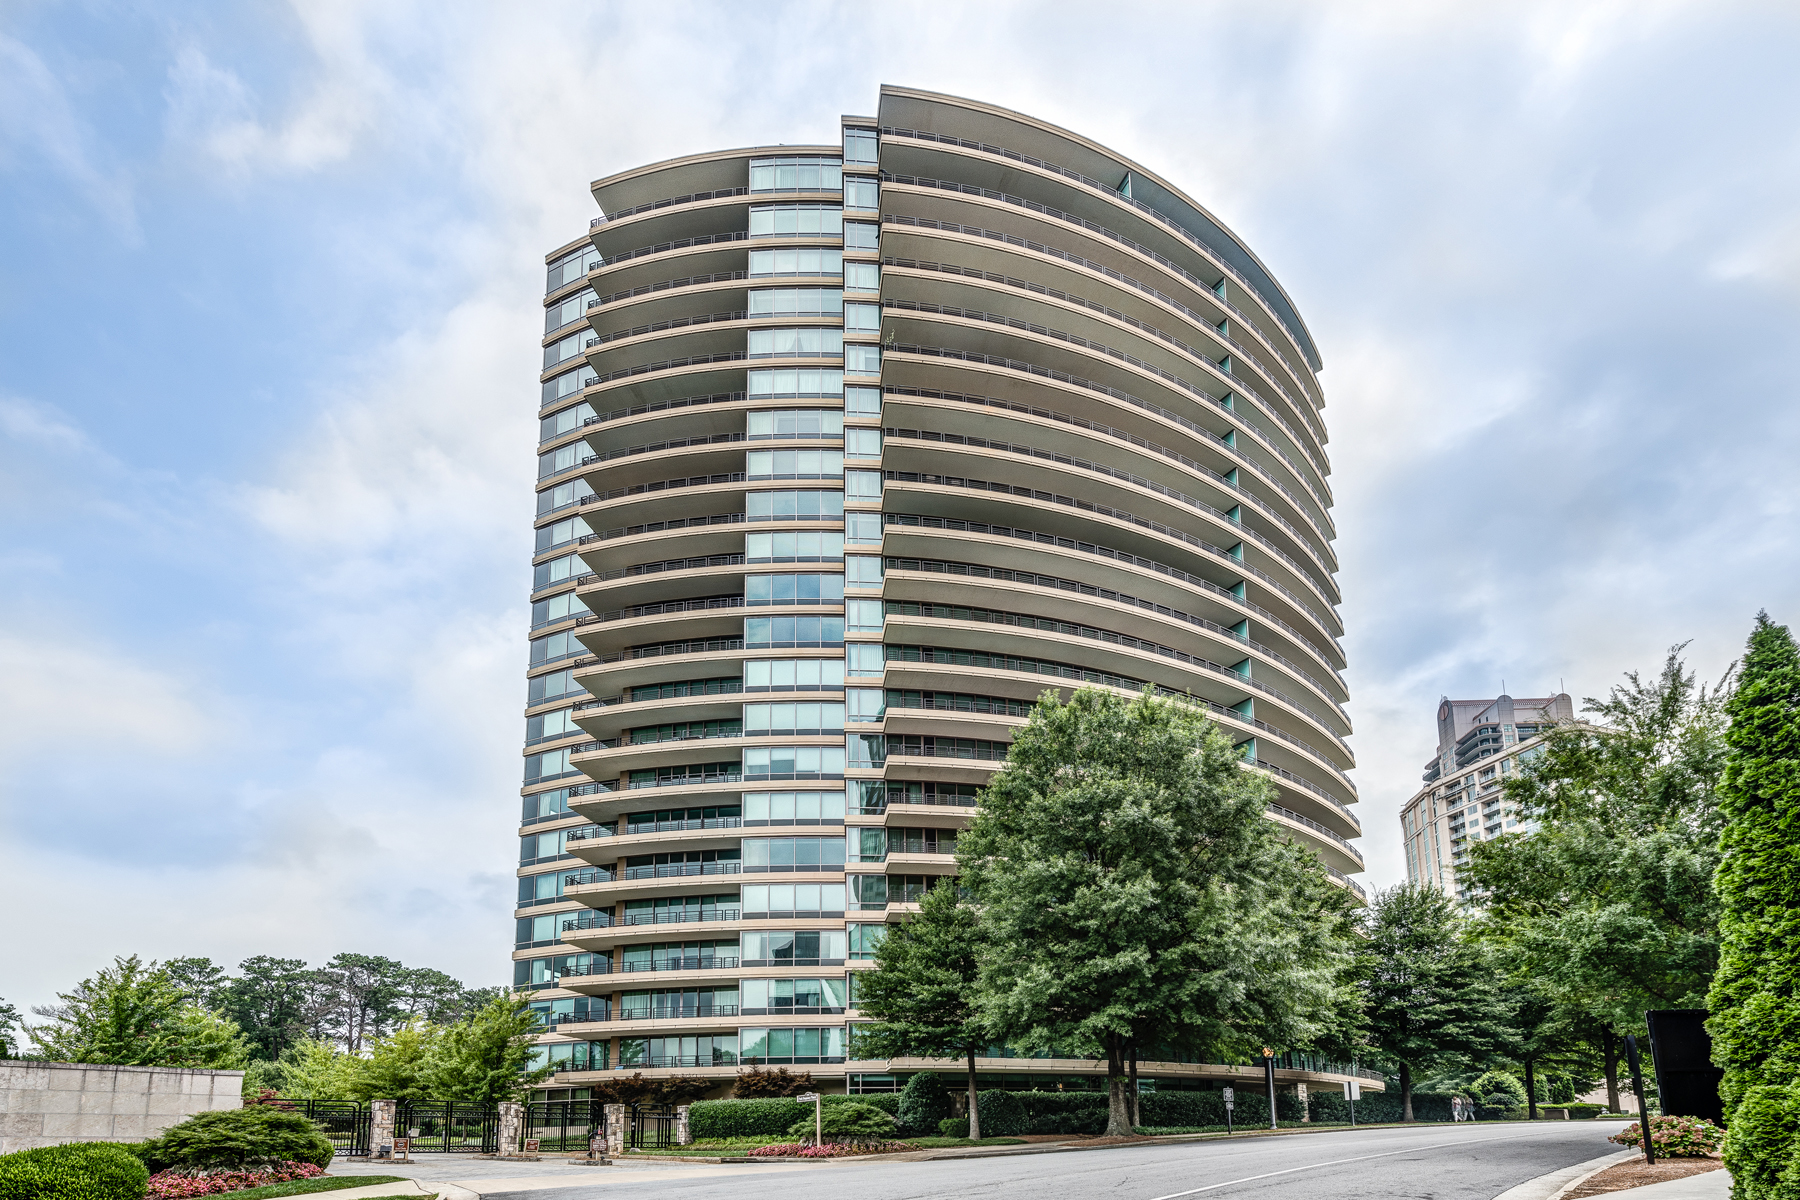 Condominium for Sale at Live in the most sought-after building with the best staff in Buckhead 700 Park Regency Place NE, No. 1605 Atlanta, Georgia 30326 United States